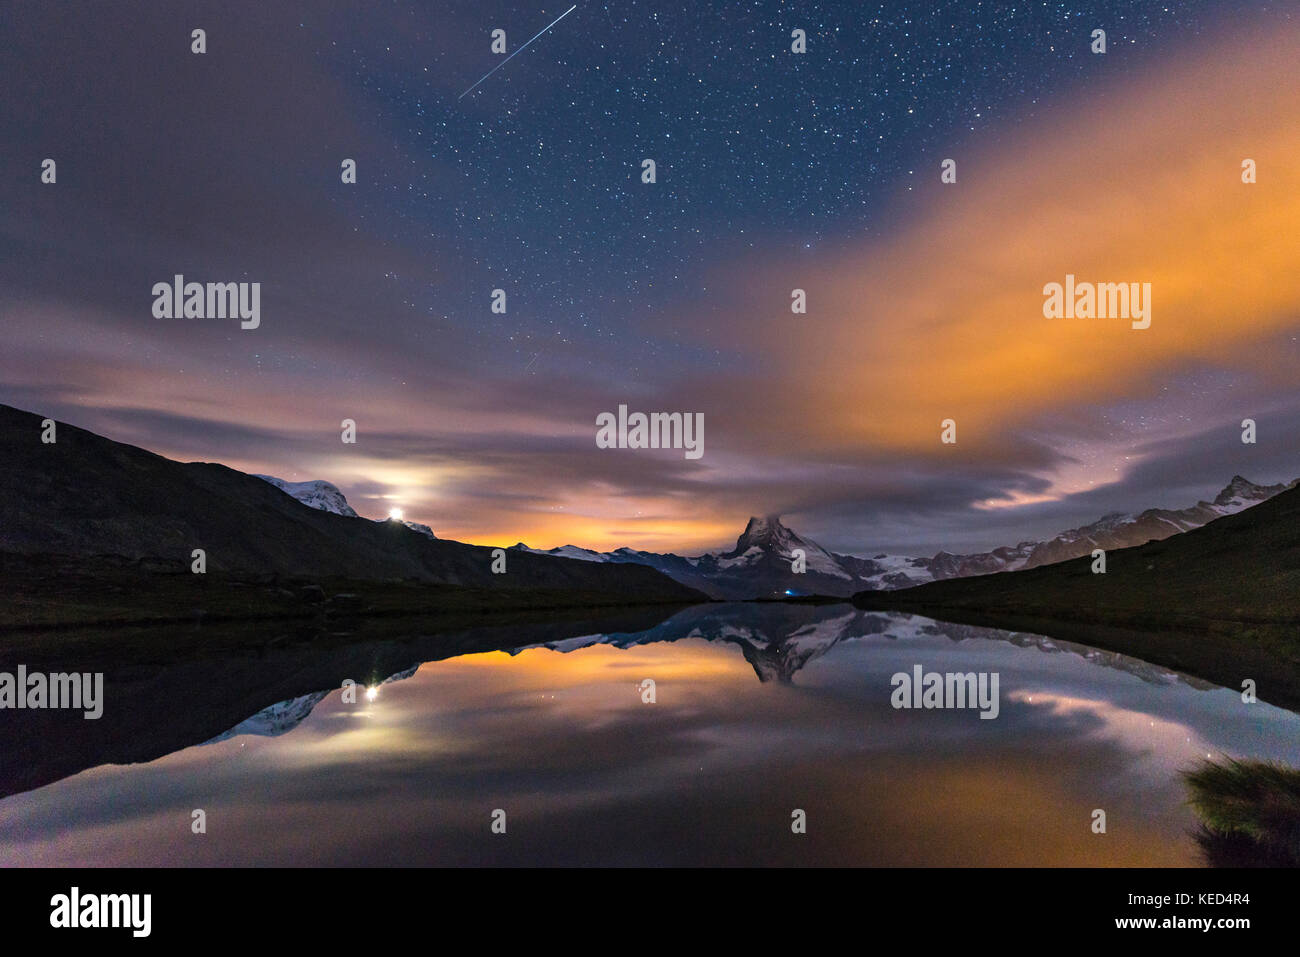 Night view, starry sky with shooting star, snow-covered Matterhorn reflected in the Sellisee, Valais, Switzerland - Stock Image